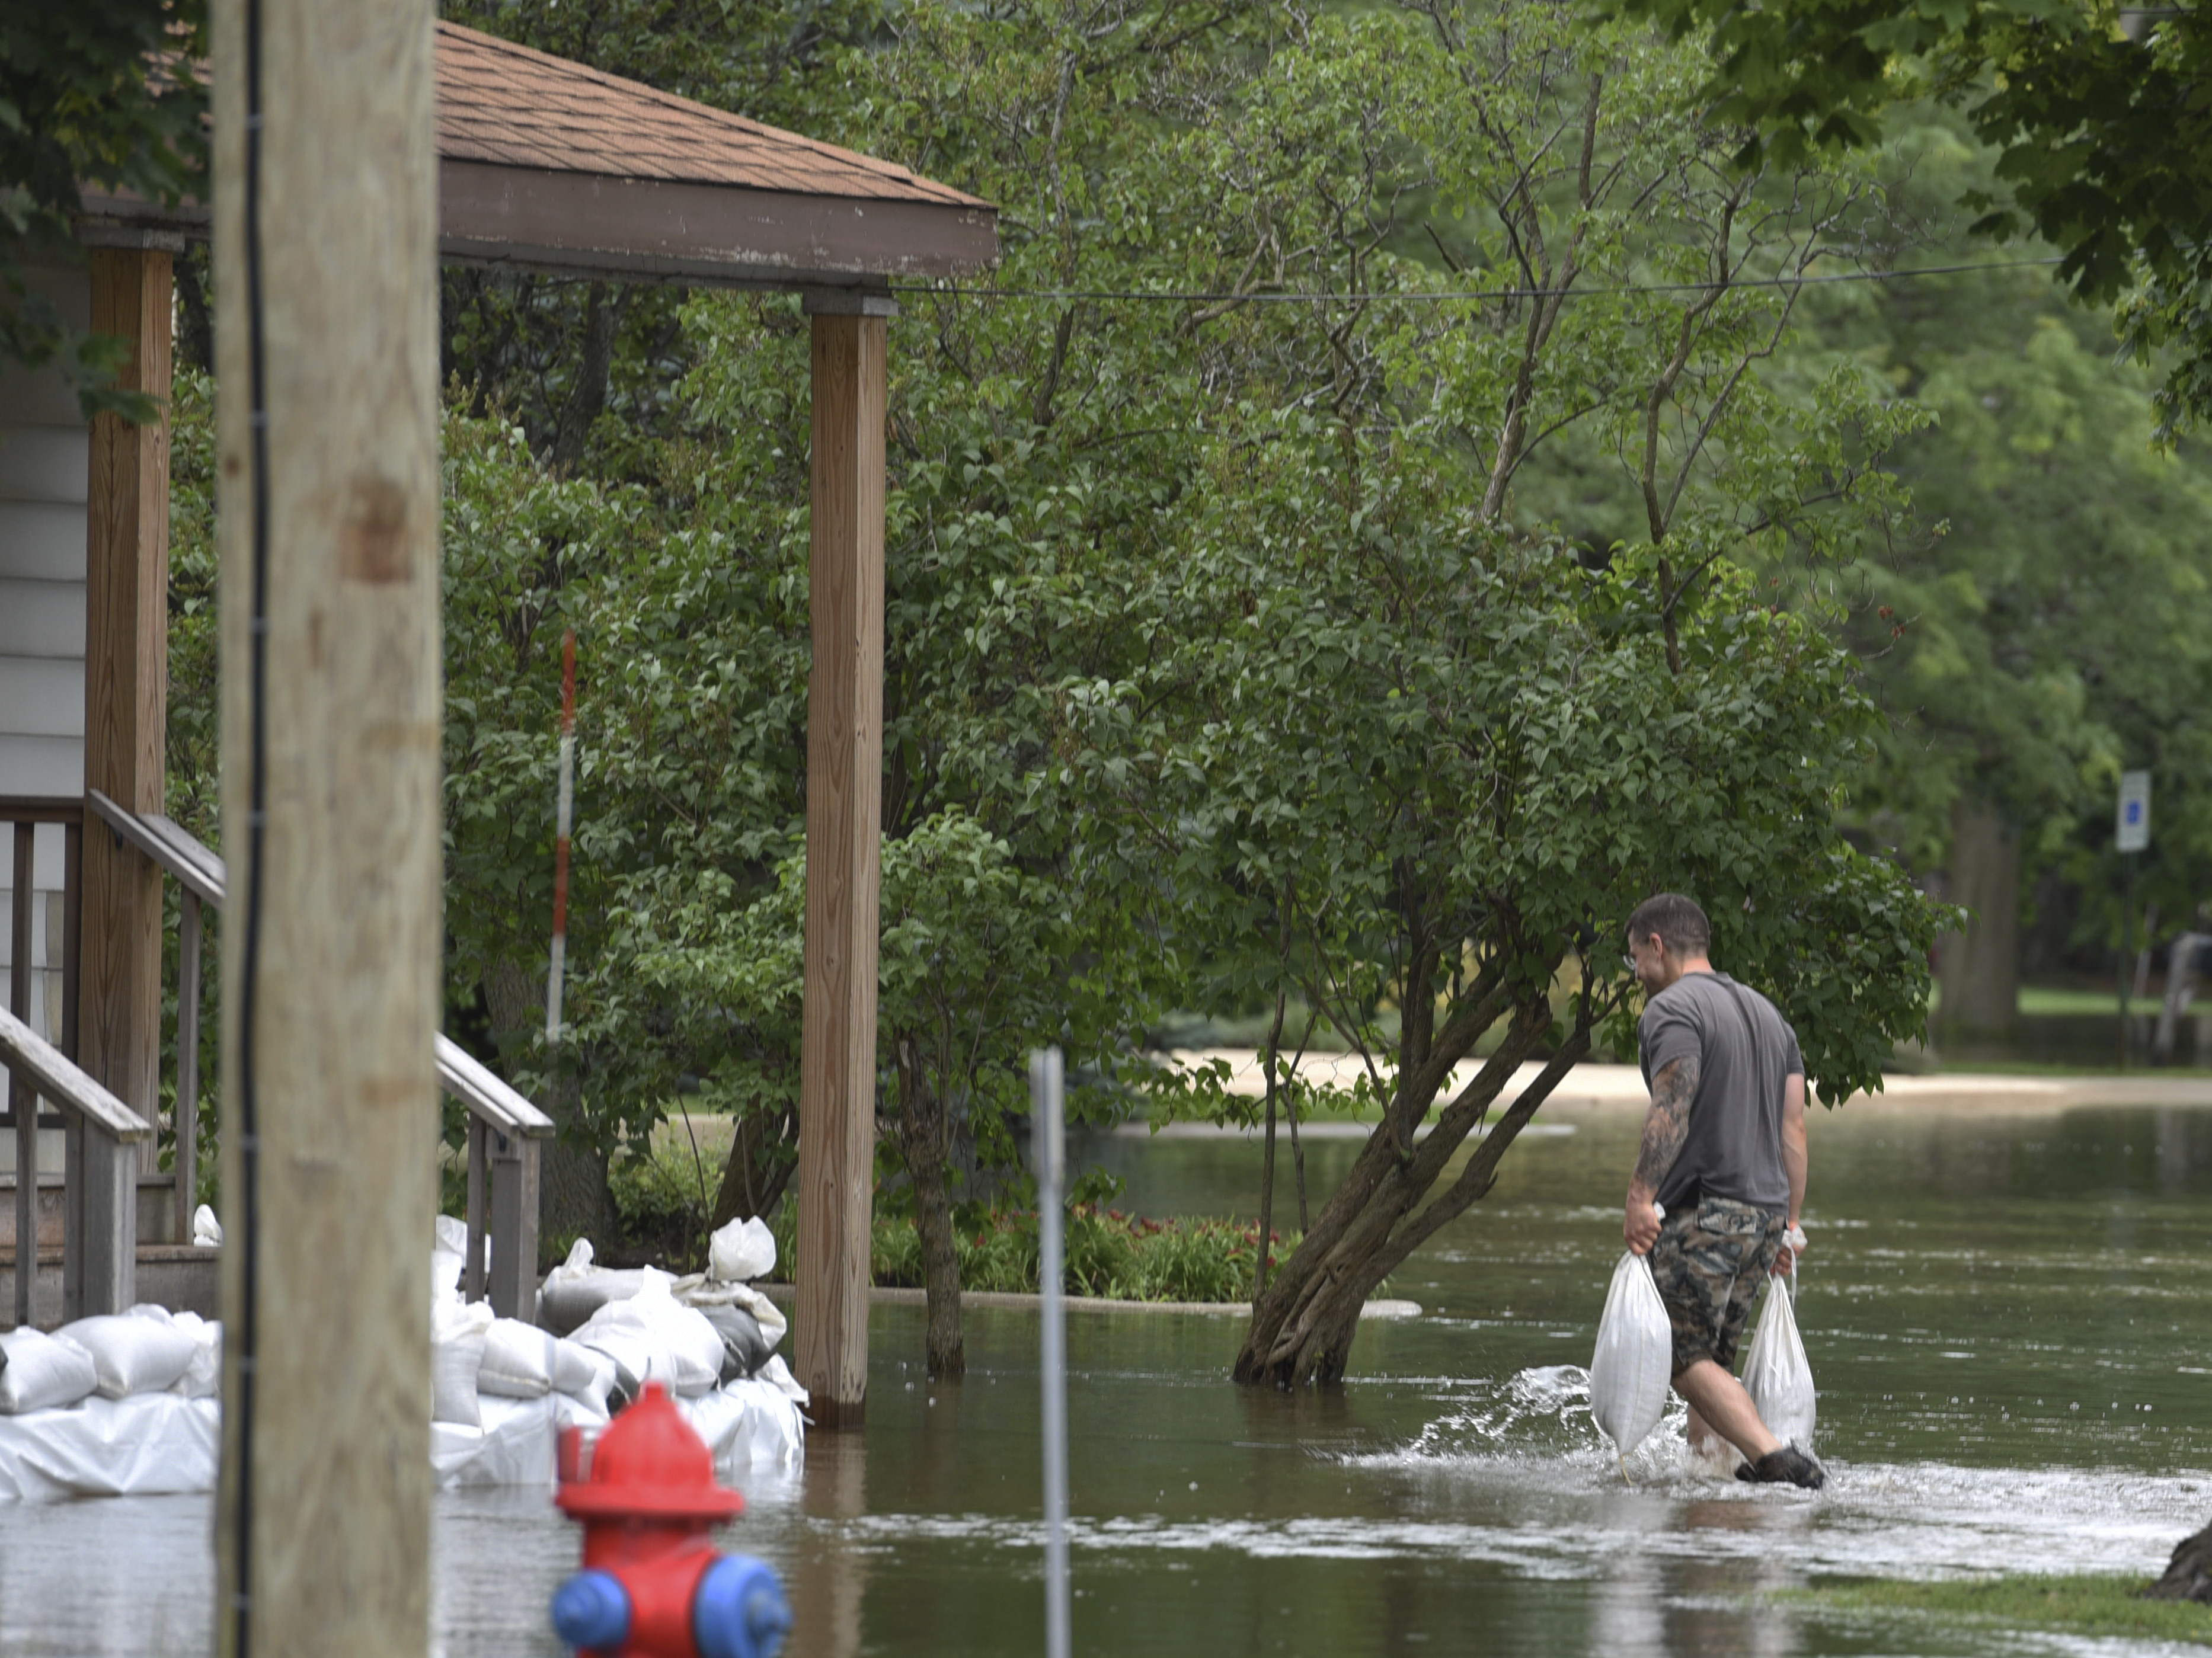 Forecasters warn flooding could worsen in suburban Chicago